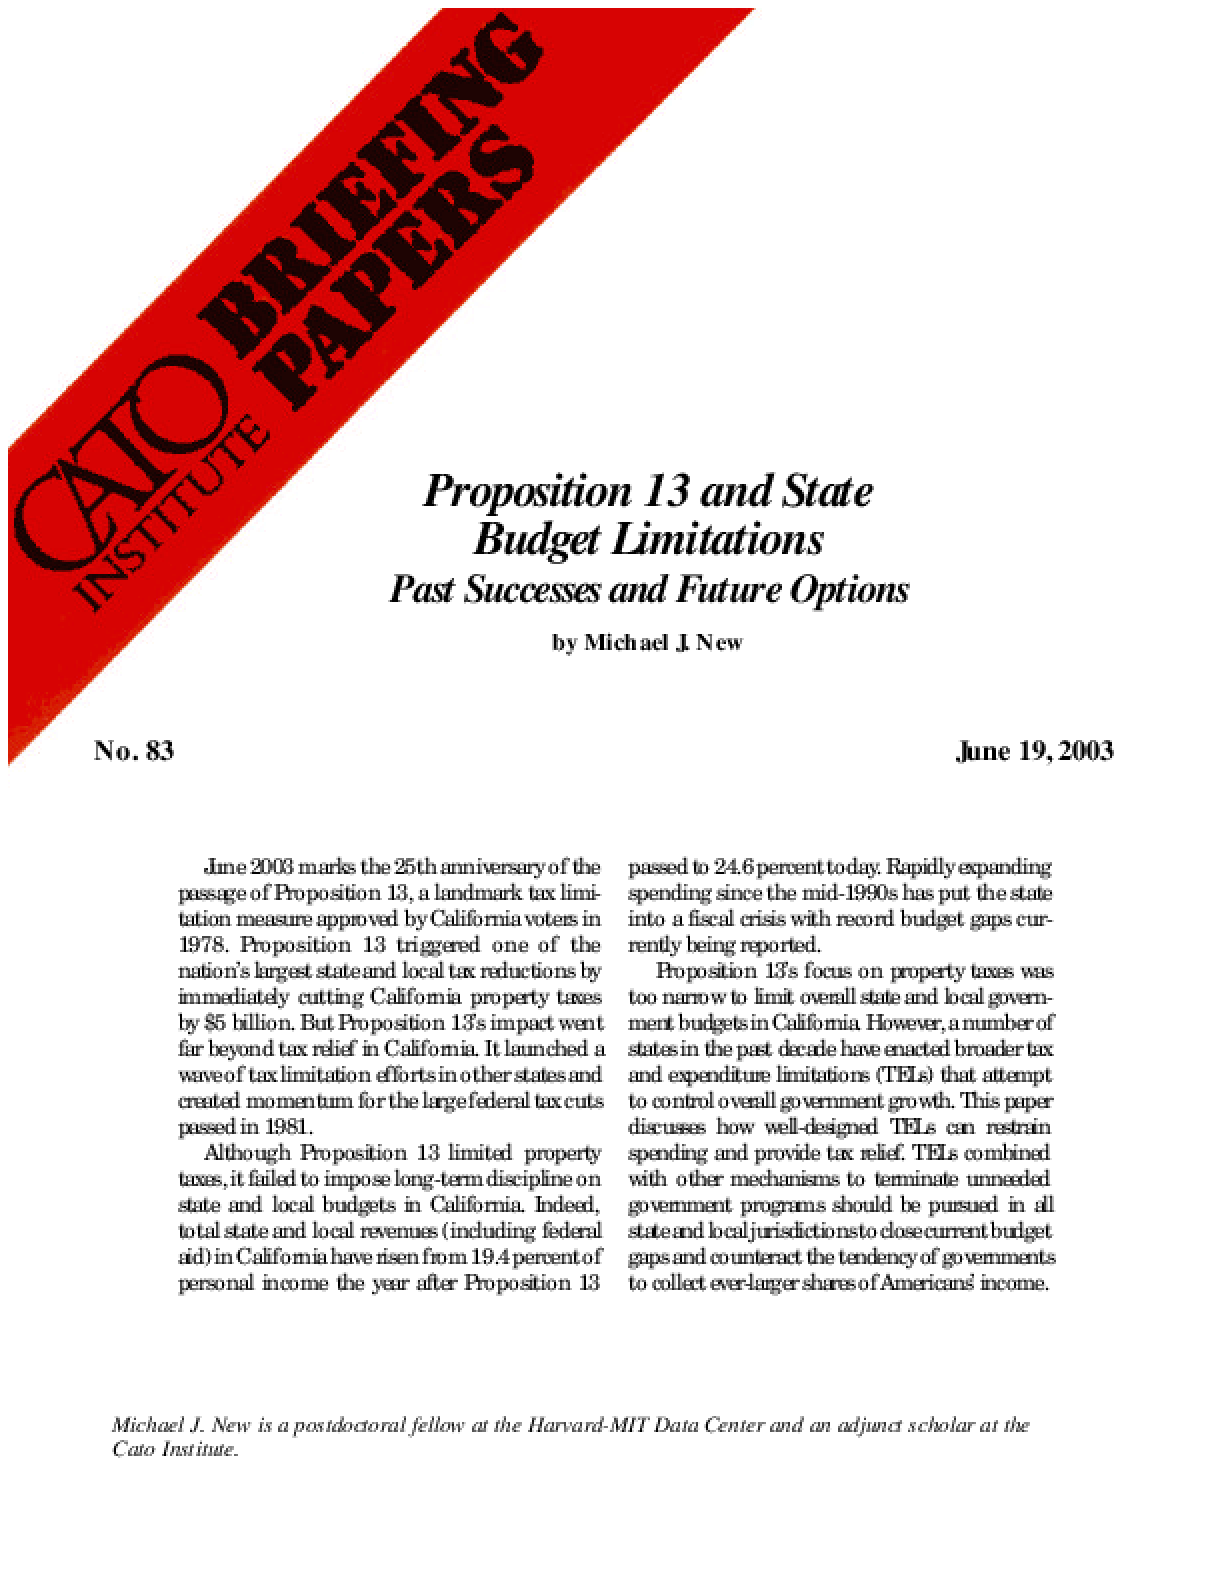 Proposition 13 and State Budget Limitations: Past Successes and Future Options